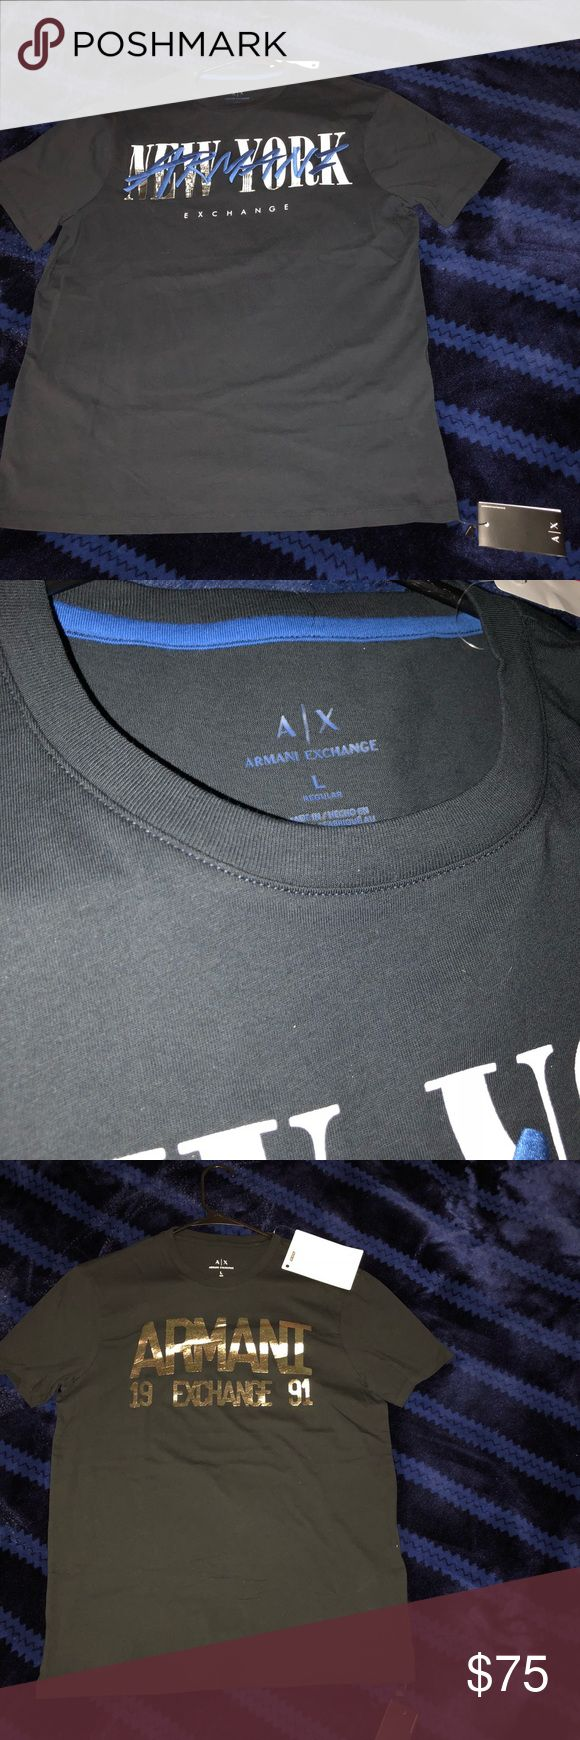 Armani Exchange Large Men's T-shirts Bundle Brand New Armani Exchange Men's T-shirts. All size large with tags. Bundle but can be sold separately on best offer. Never worn. Feel free to contact us with any questions. Shop With Confidence ! :) We ship within 24 hours Armani Exchange Tops Tees - Short Sleeve